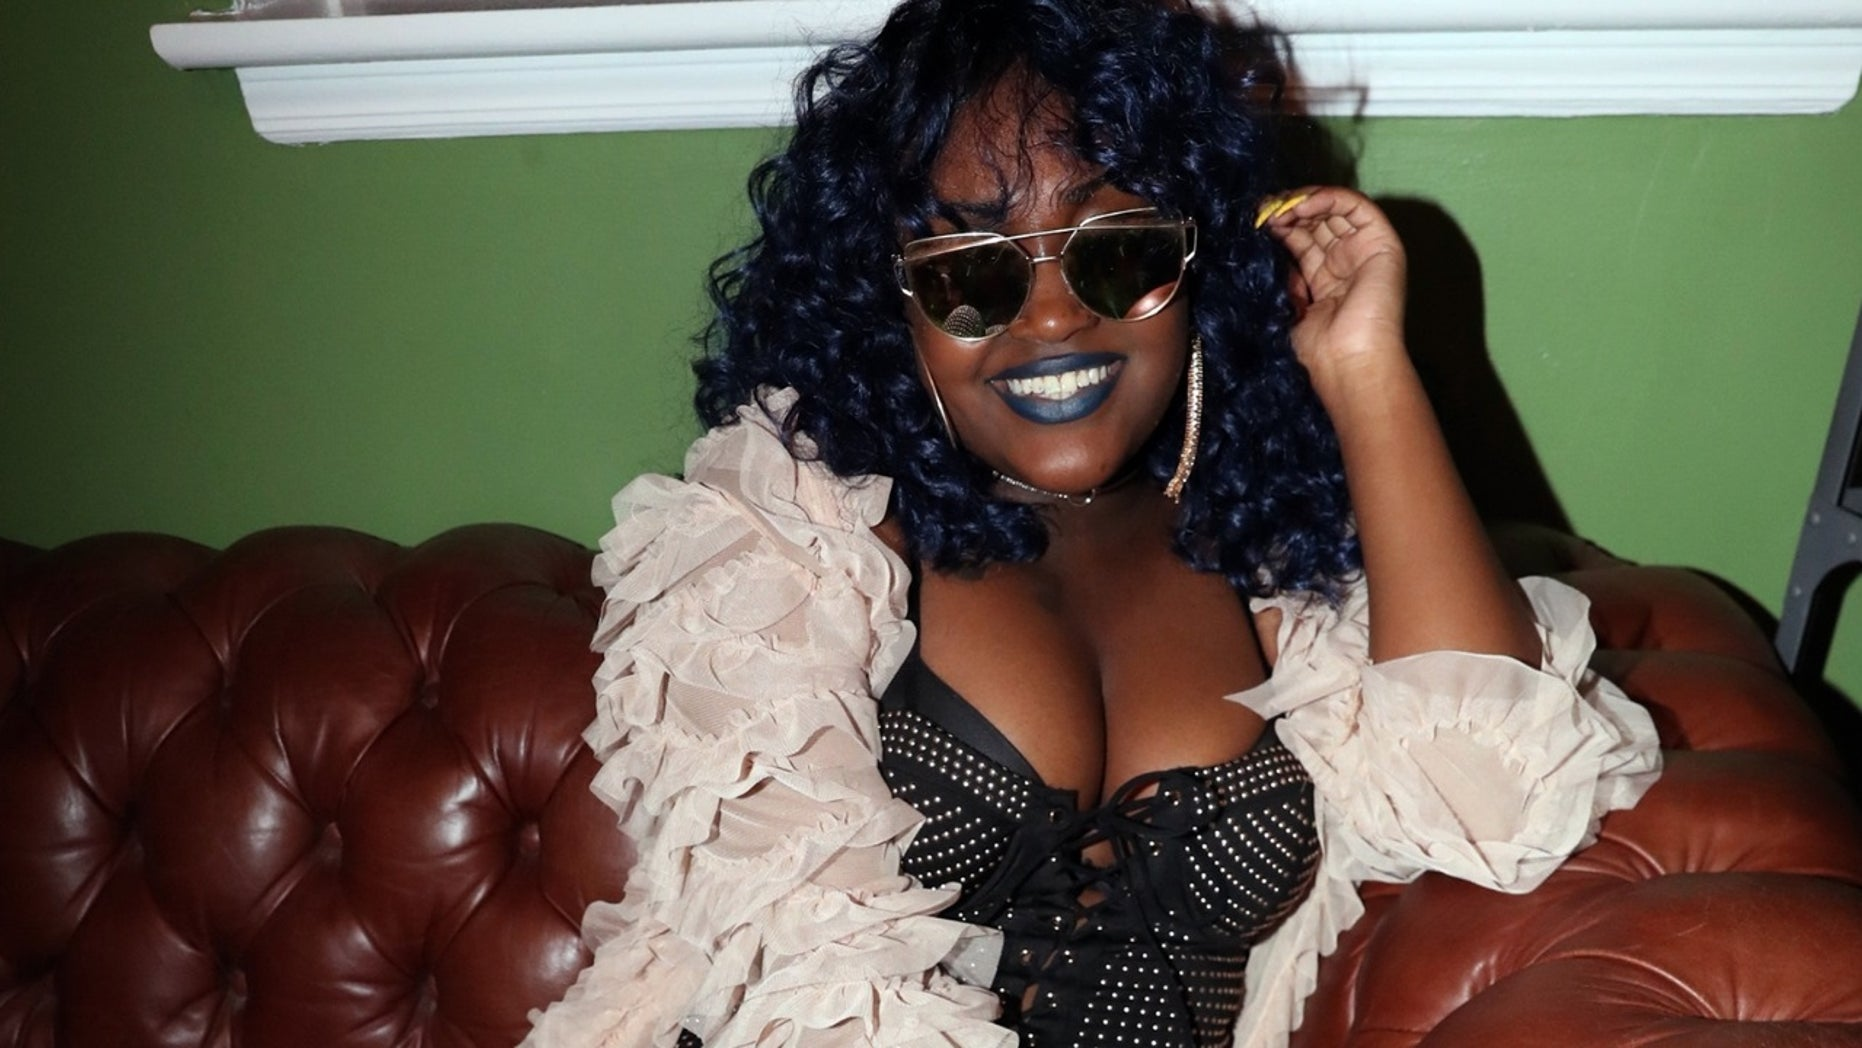 Rapper CupcakKe was reportedly taken to the hospital after she posted a cryptic tweet stating she was going to take her own life.